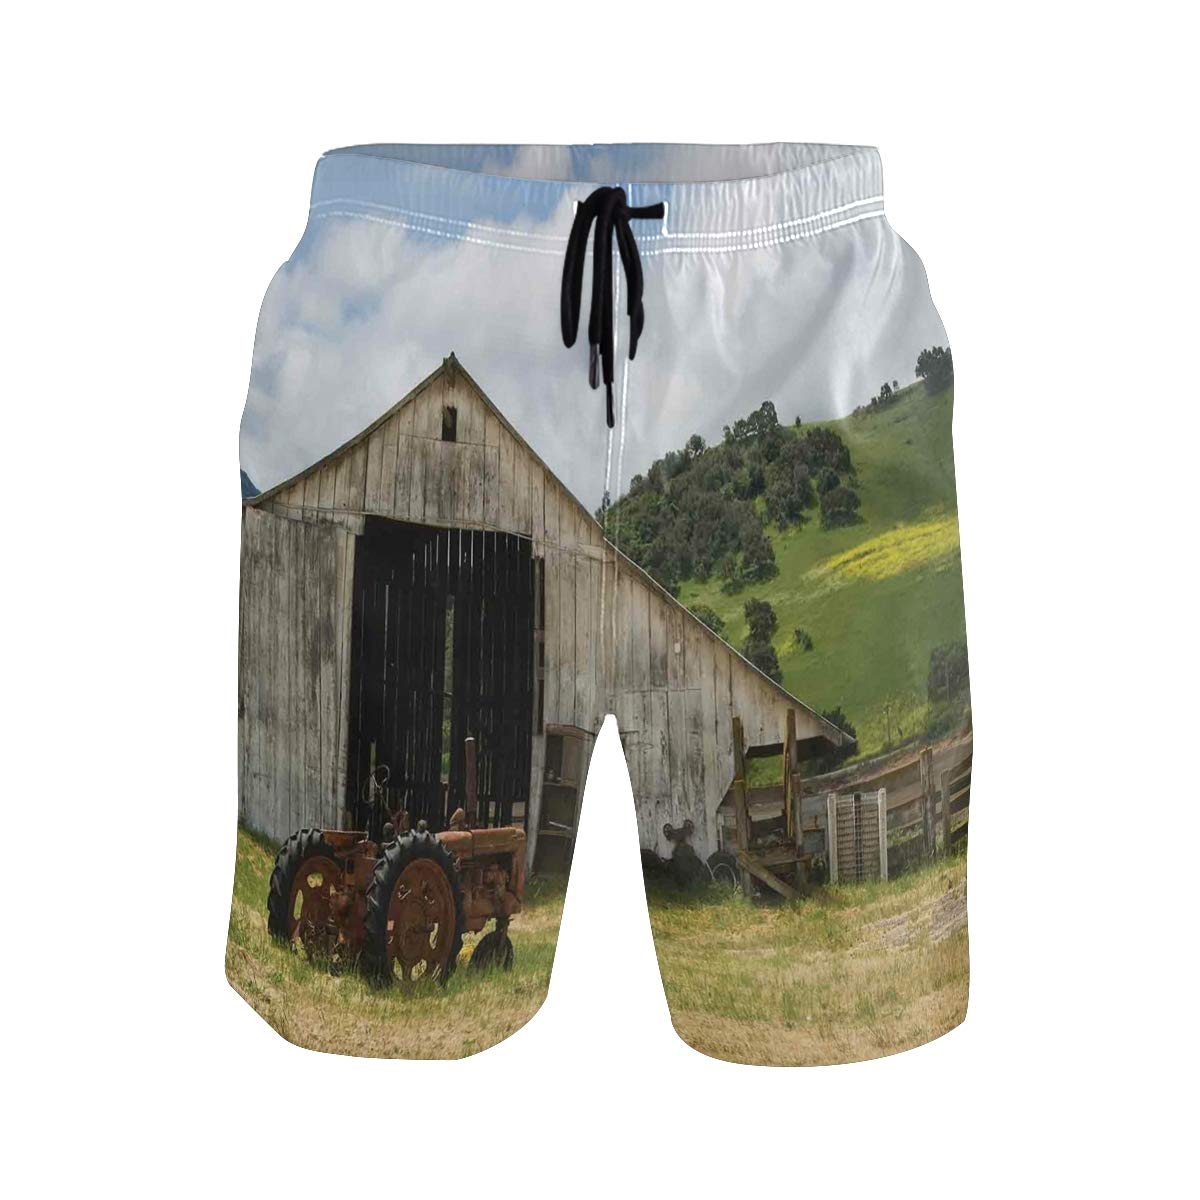 KVMV Old Wooden Barn with Rusted Tractor Hillside Enclosed Fence and T 5size Beach Shorts